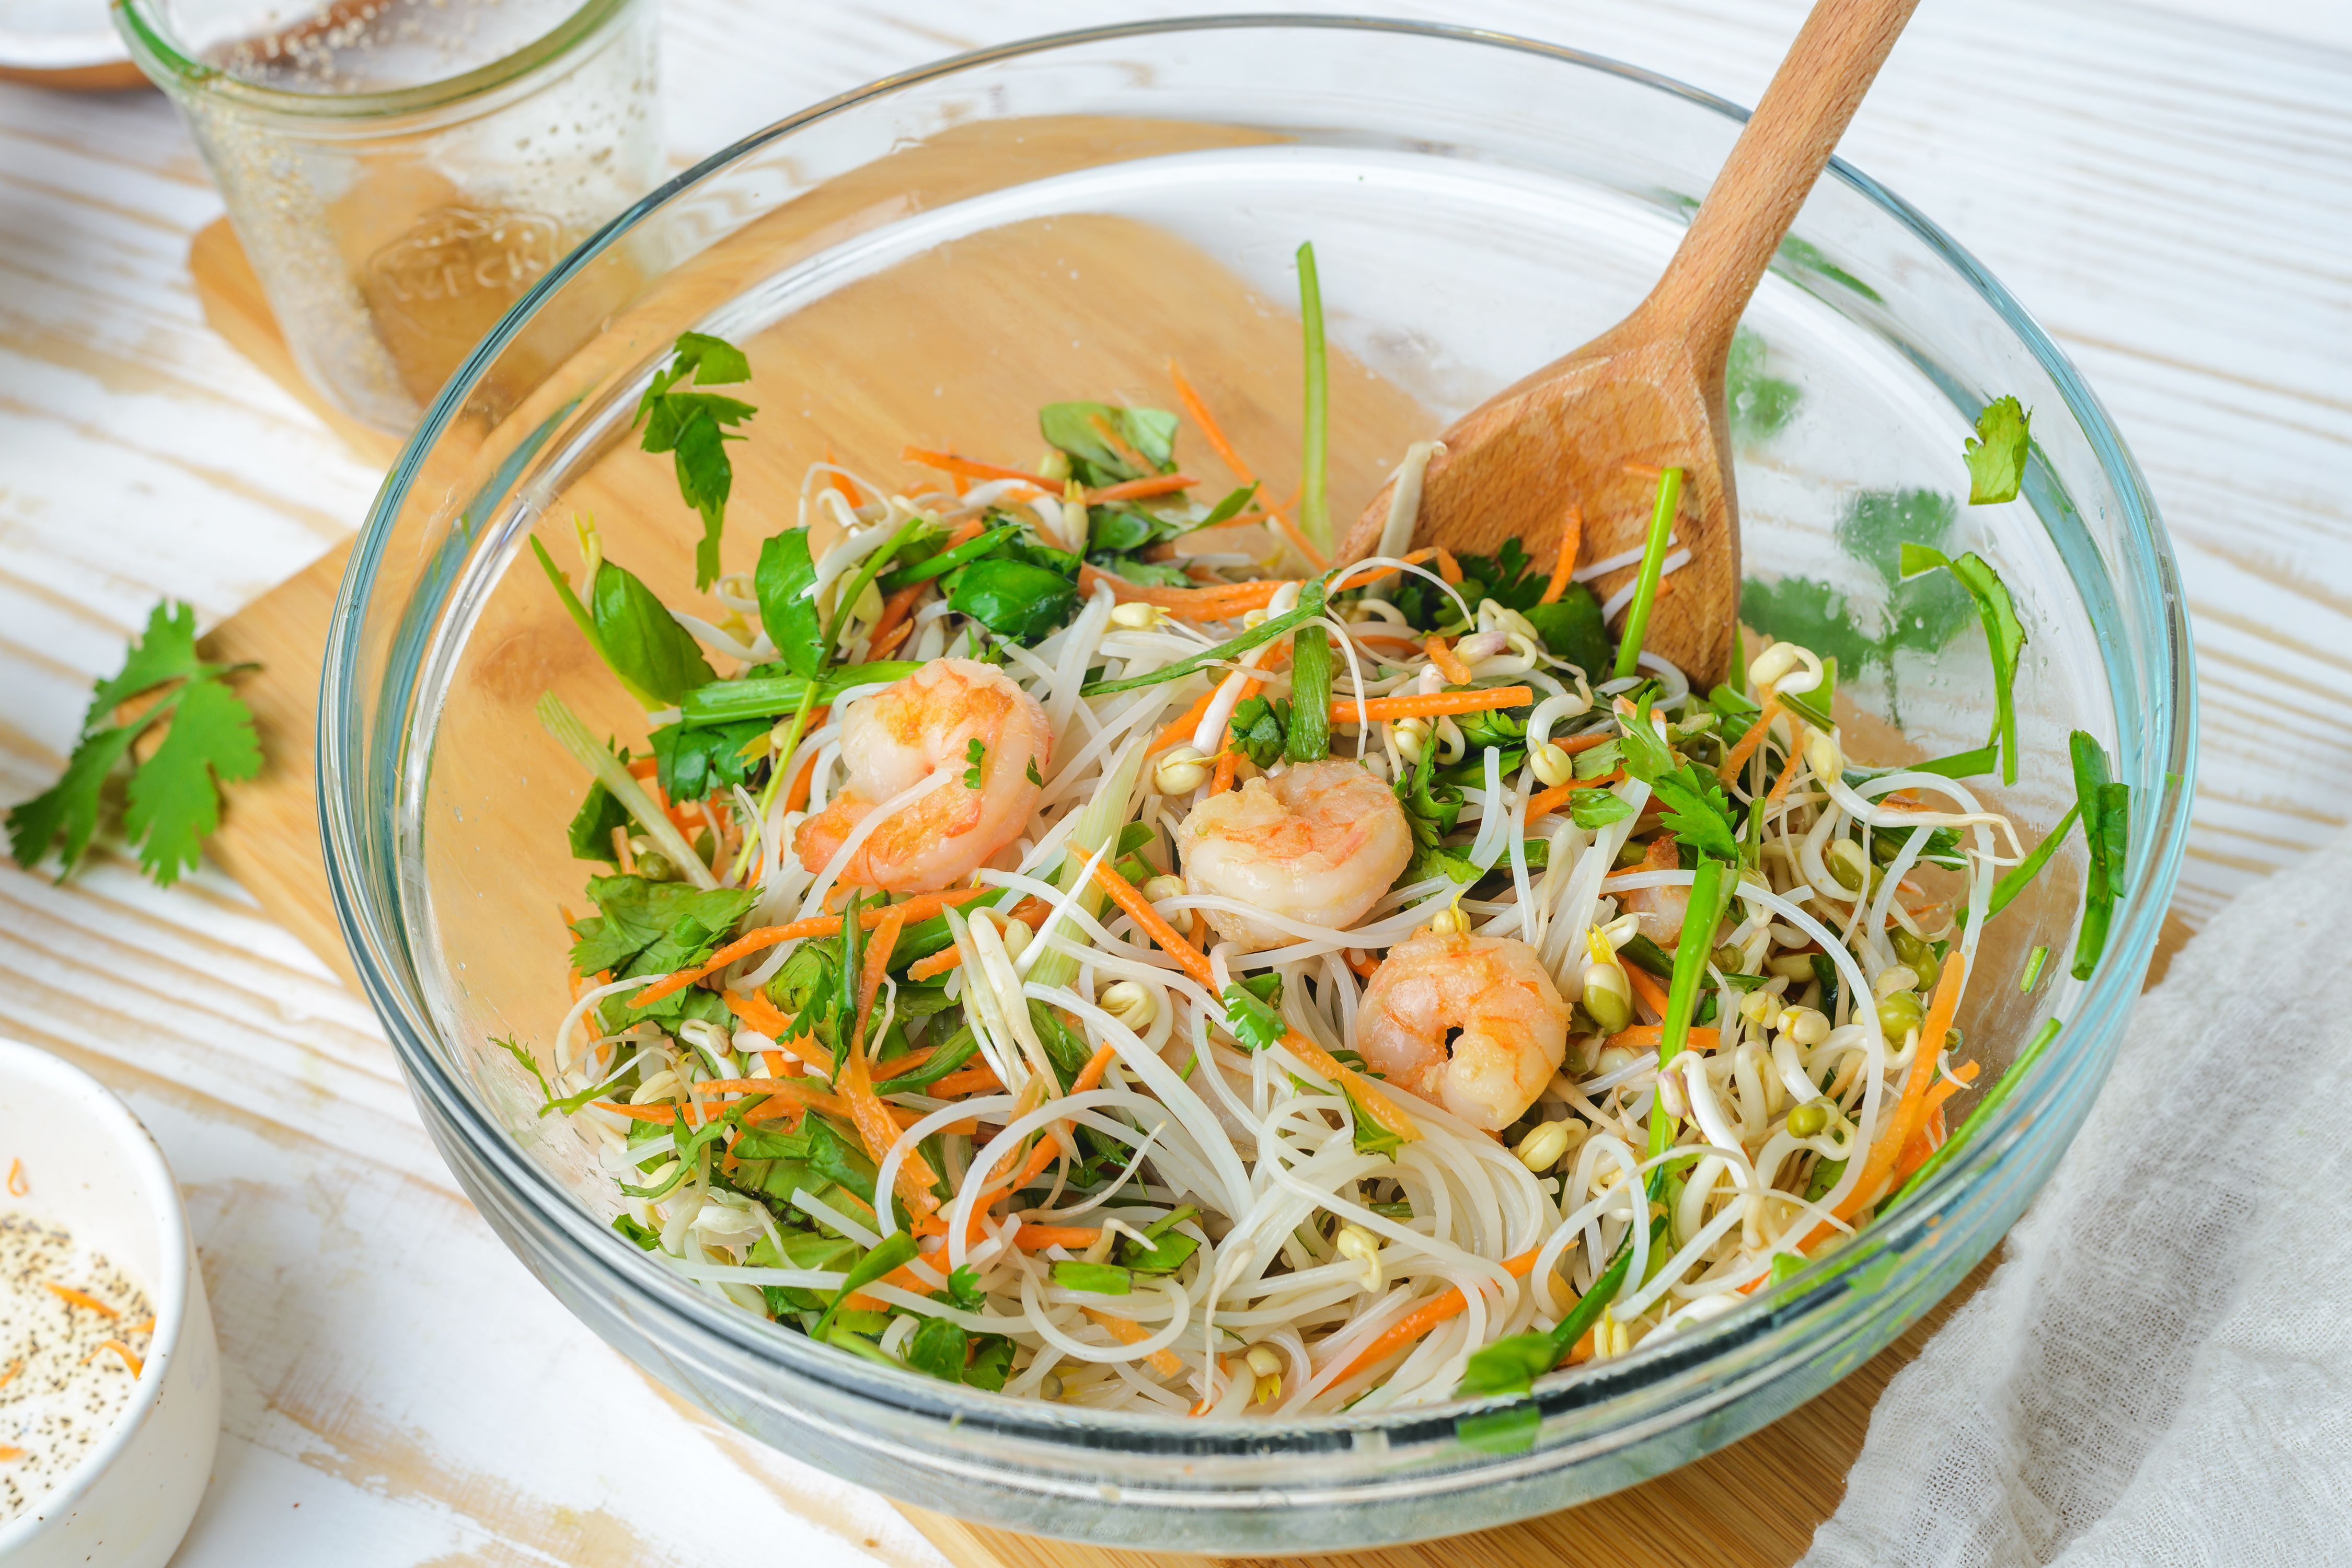 Ingredients for Thai spring rolls in a bowl with a wooden spoon